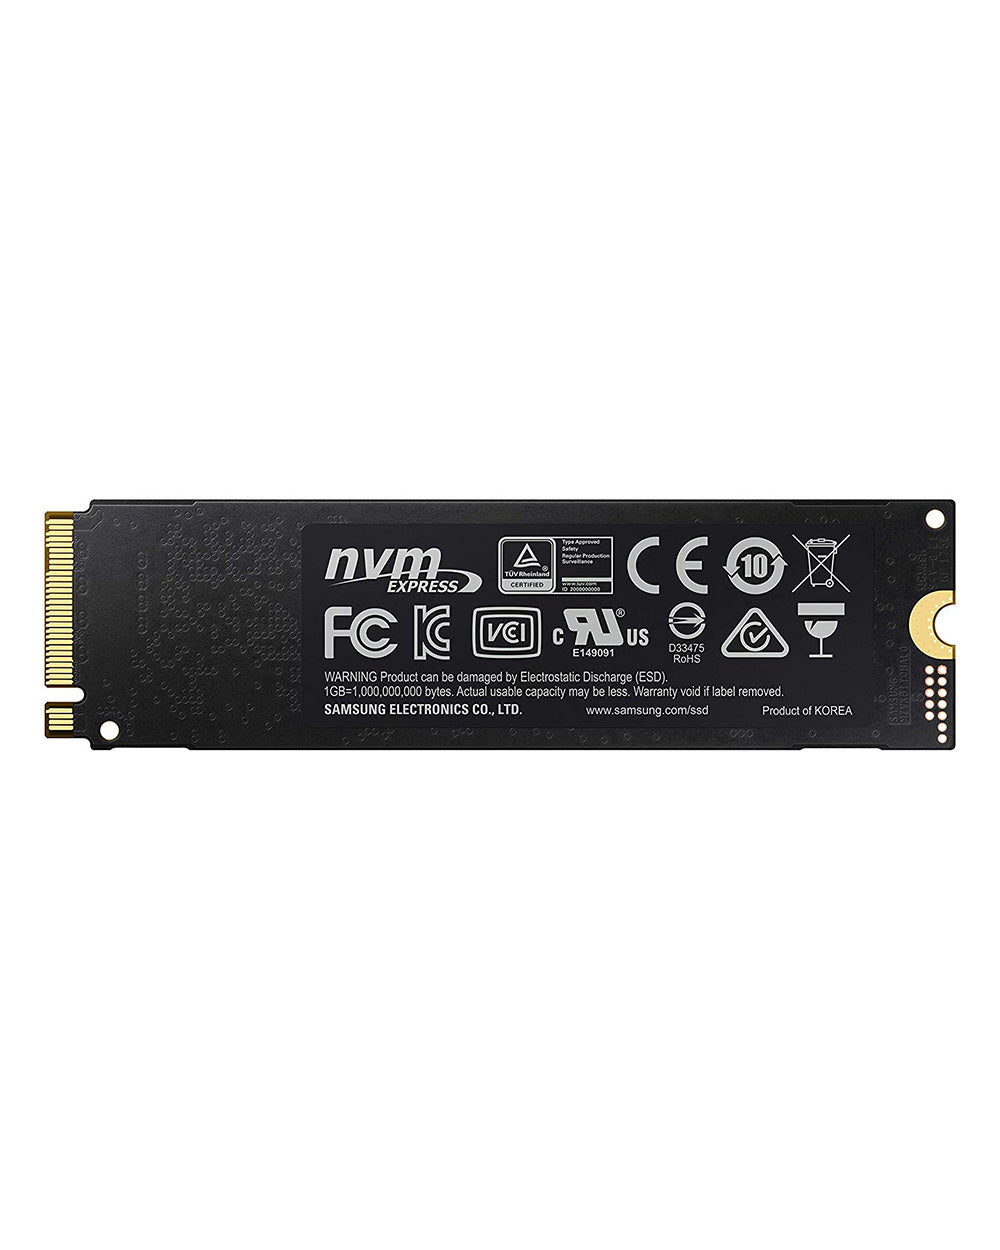 Add a 250GB - Samsung 970 EVO NVMe M.2 Internal SSD to your NAS for only $98.75 from $98.75